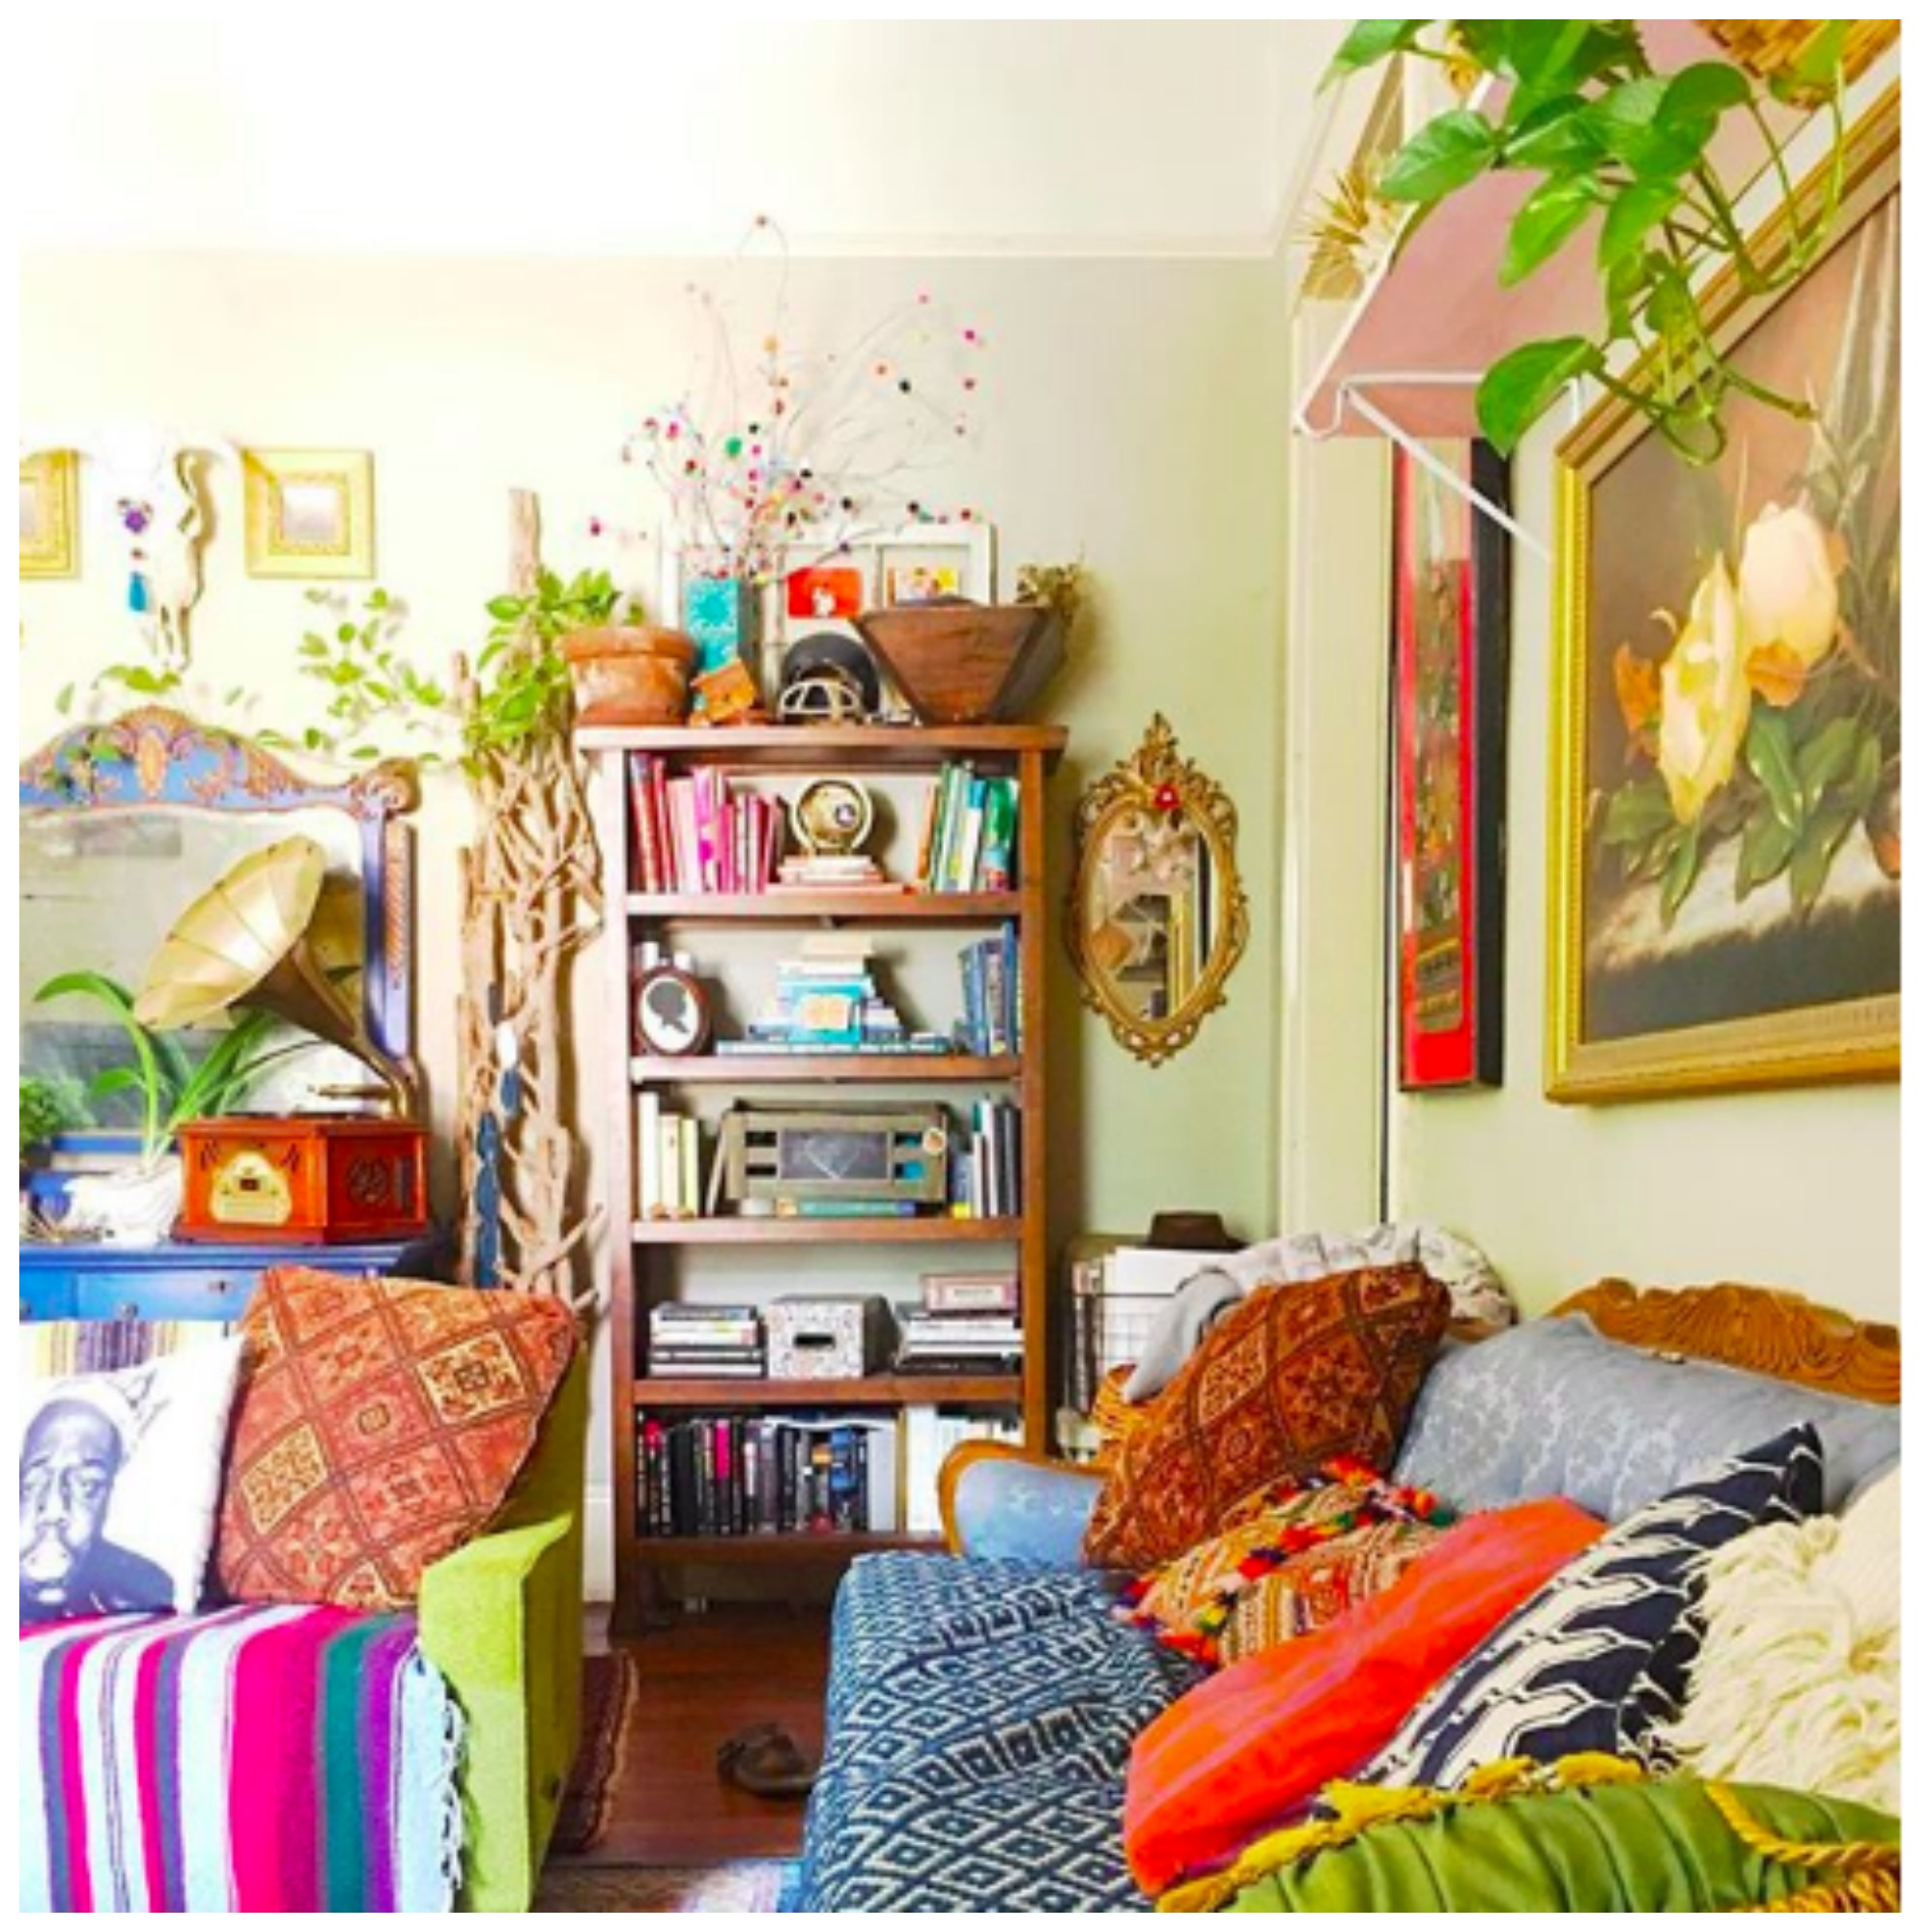 Home Tour: The Thrifty Hippie Augusta Wheeler's Beautiful and Spunky Boho Bungalow in Georgia